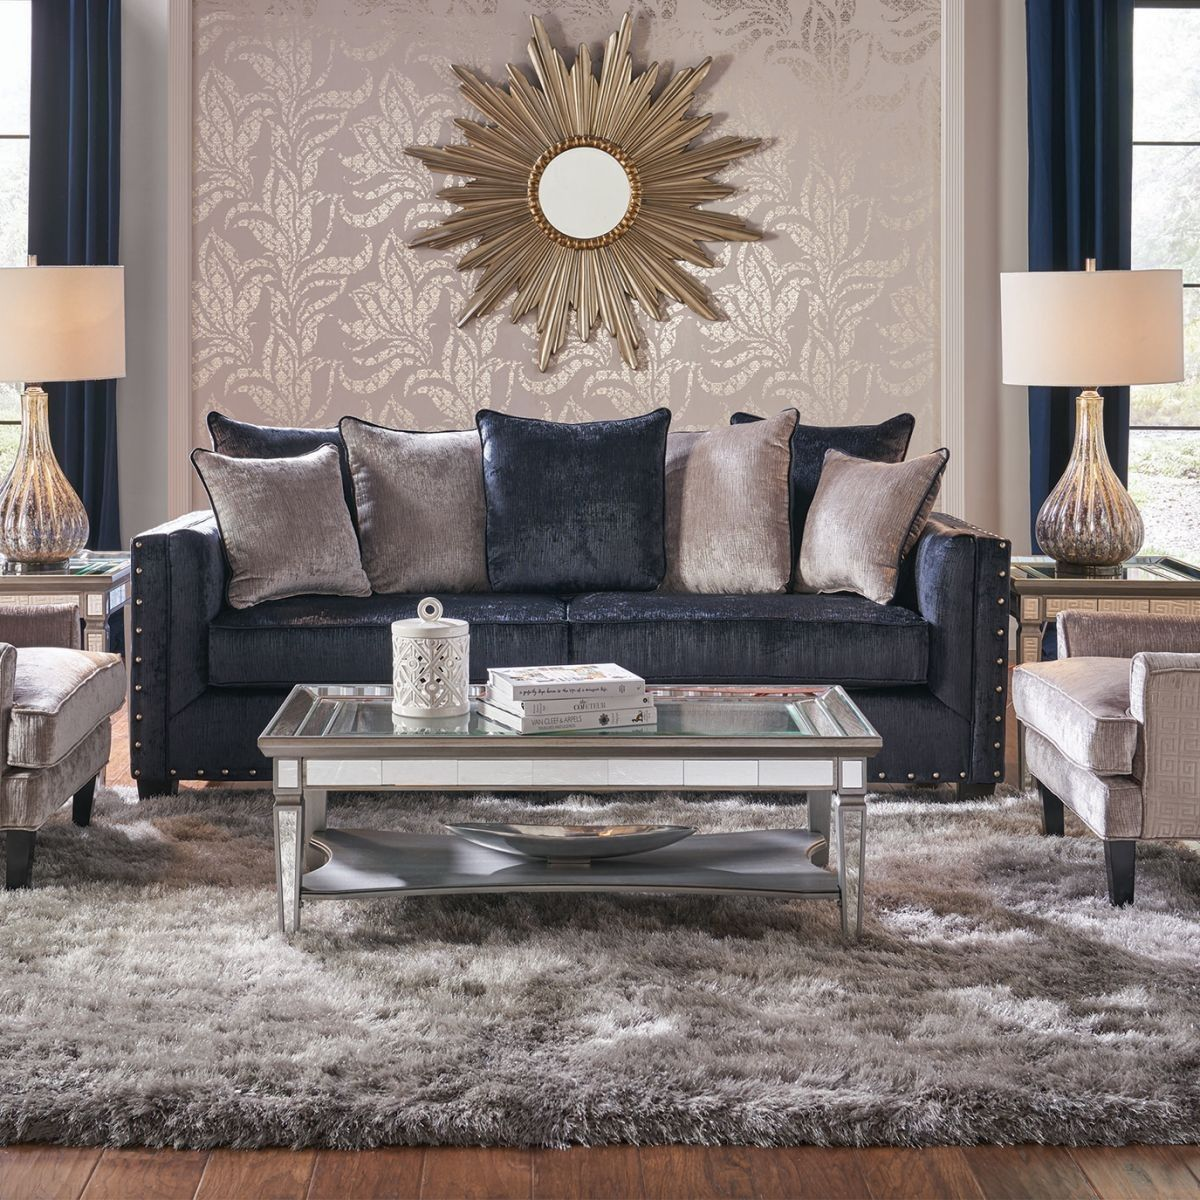 Midnight Bliss Blue Sofa & Loveseat | Living room decor ...